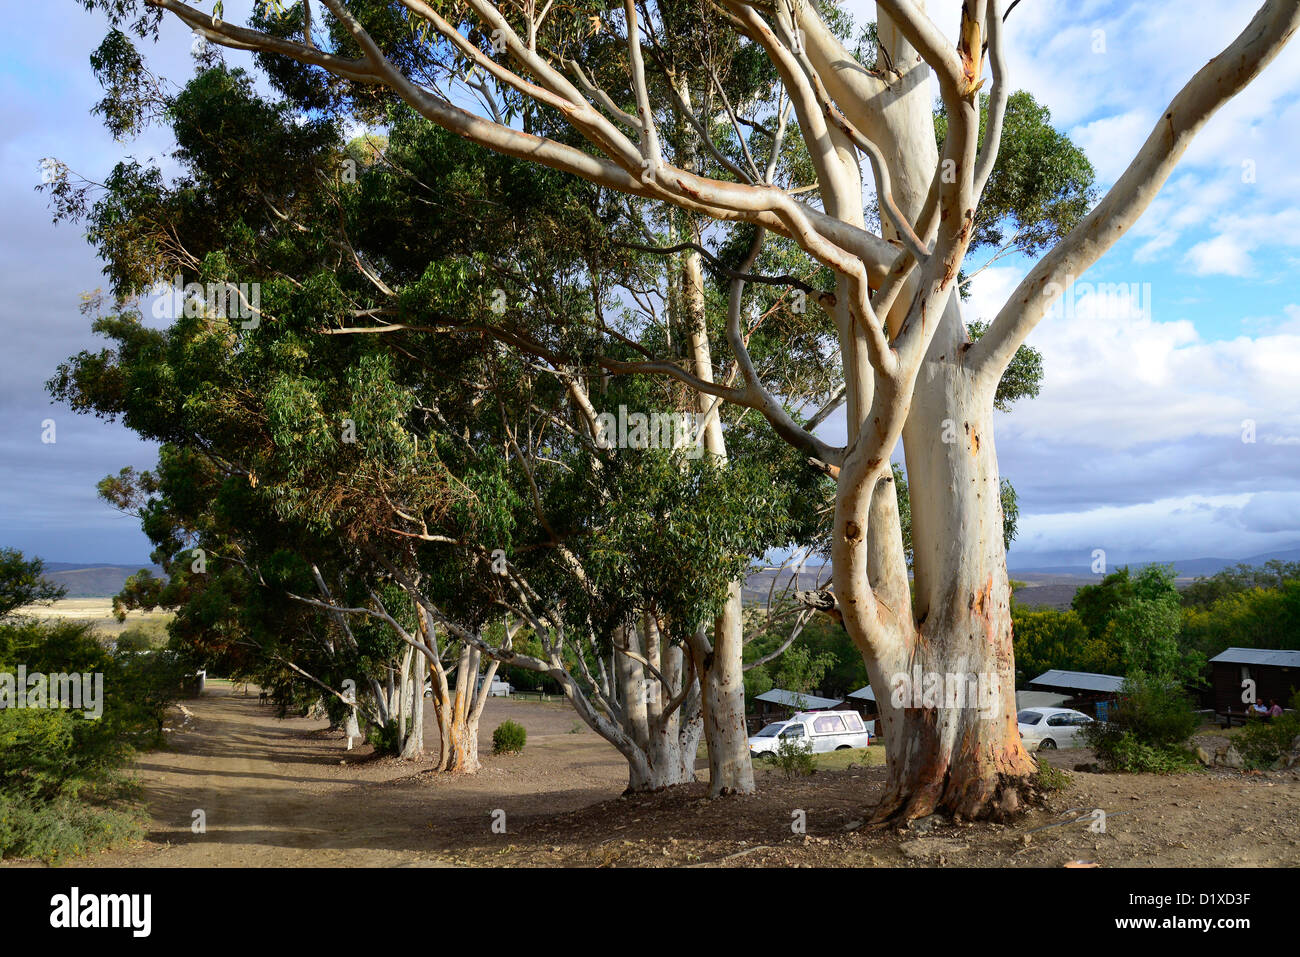 Eucalyptus trees and stormy sky at Warmwaterberg spa near Barrydale, Karoo, South Africa - Stock Image